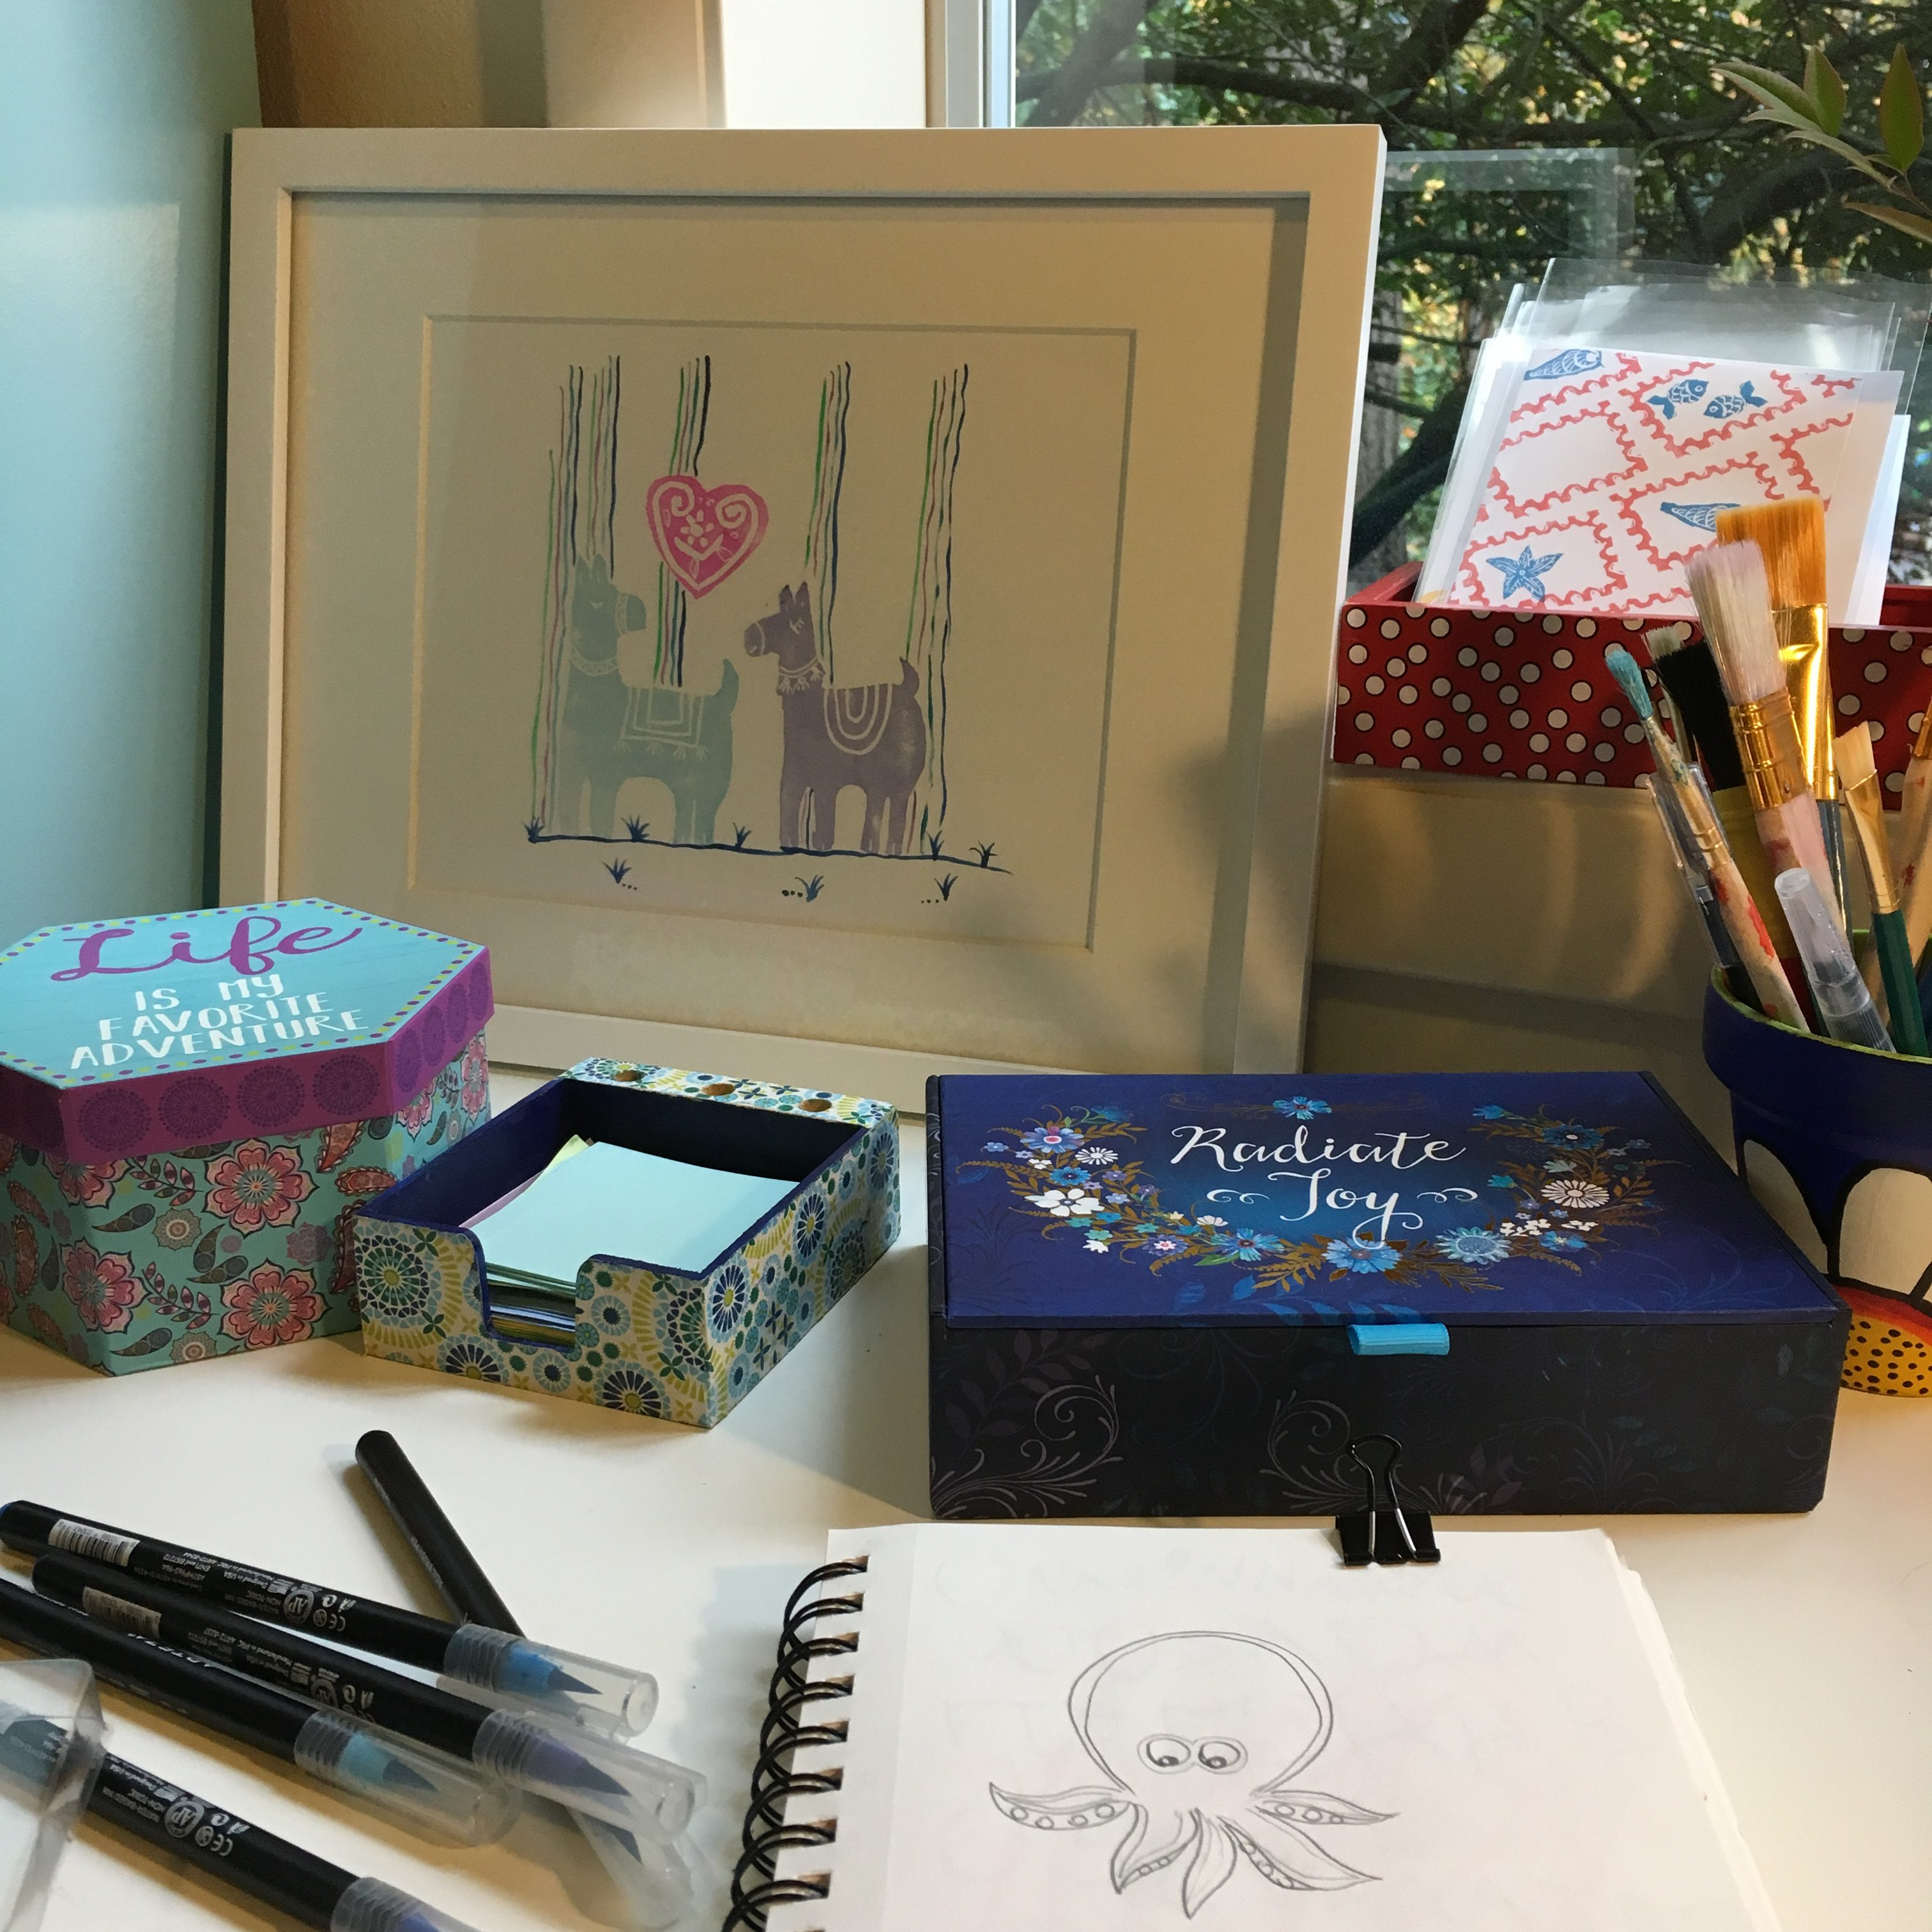 stamp containers, notes, brushes cards and a cute llama print